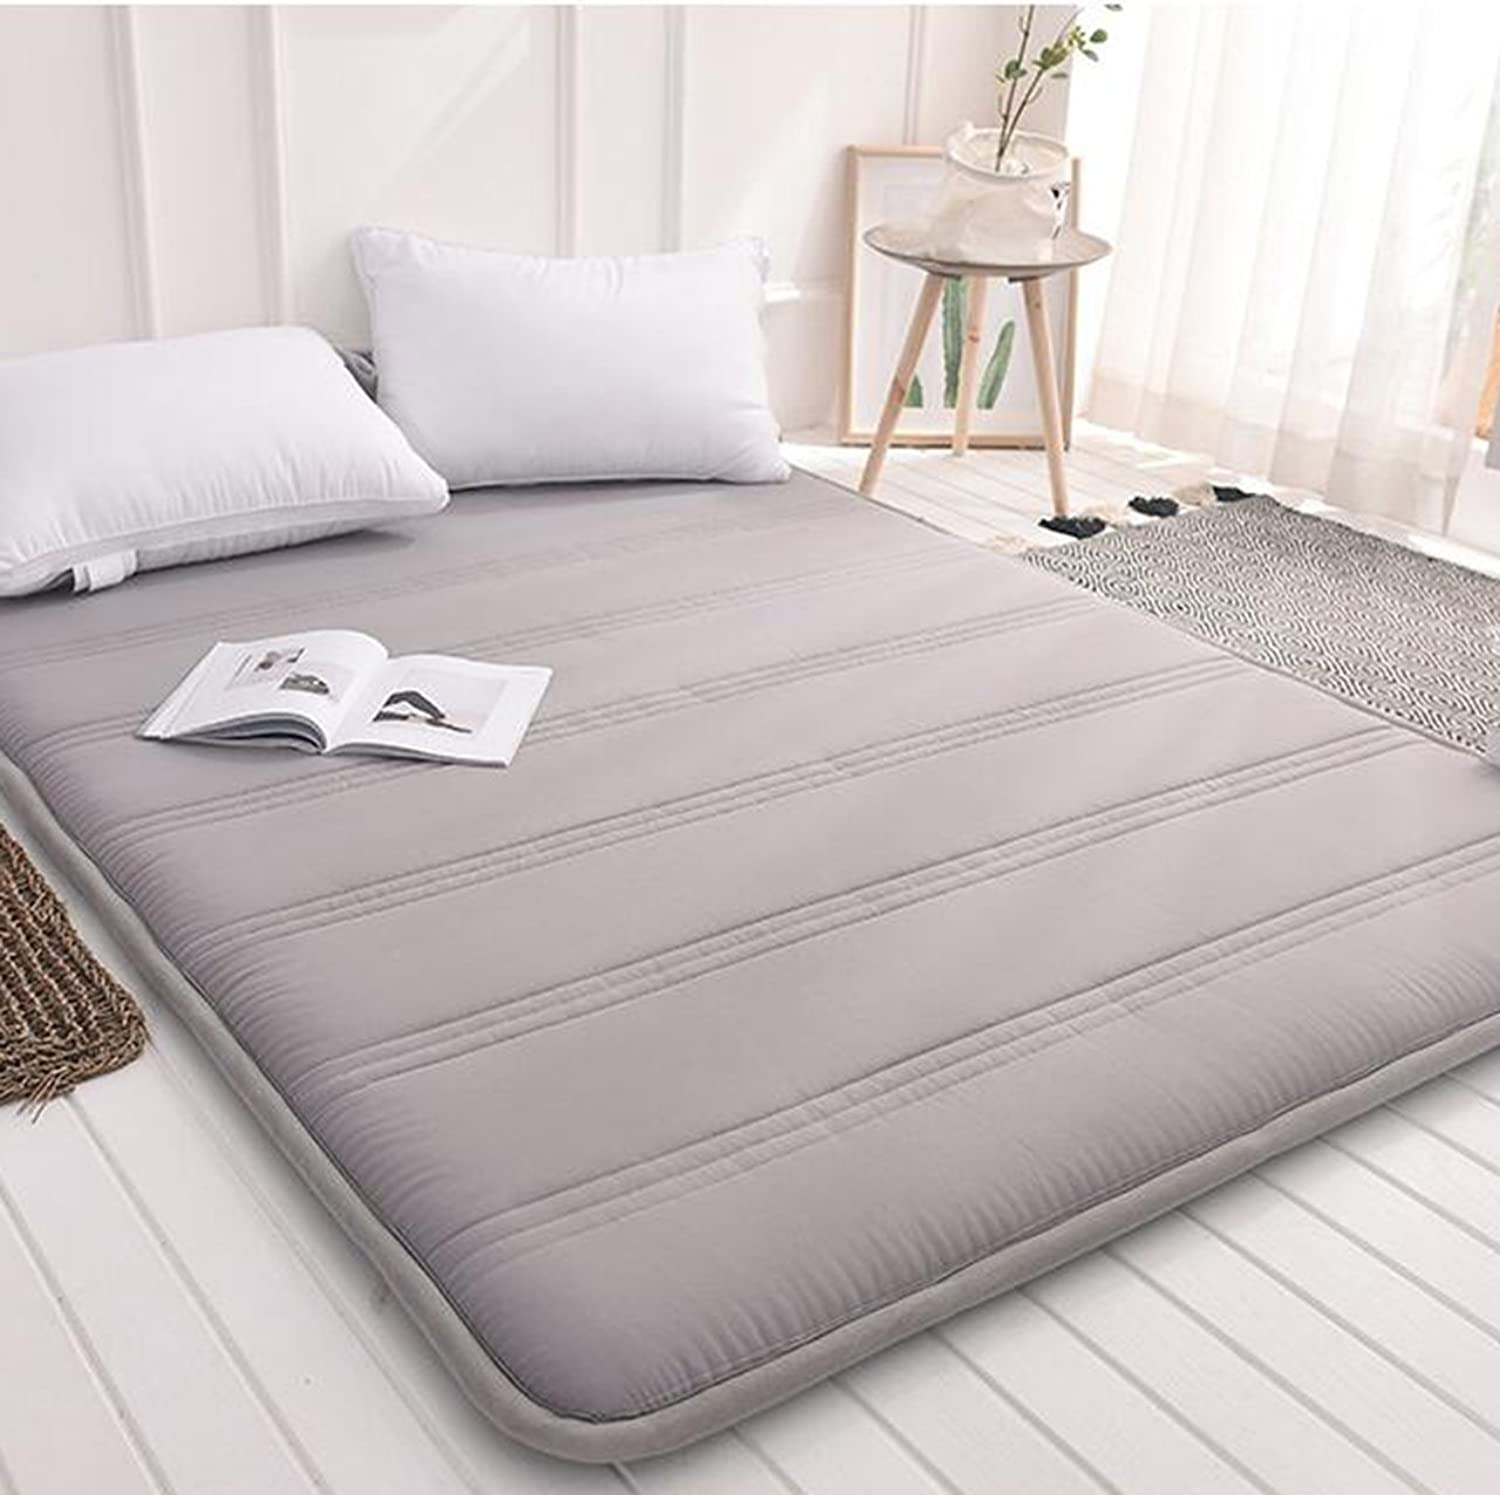 Foldable Queen Size Mattress,Tatami Floor mat Portable Sleeping pad Dorm futon Mattress Topper Quilted Bed Predection pad-B 90x200cm(35x79inch)